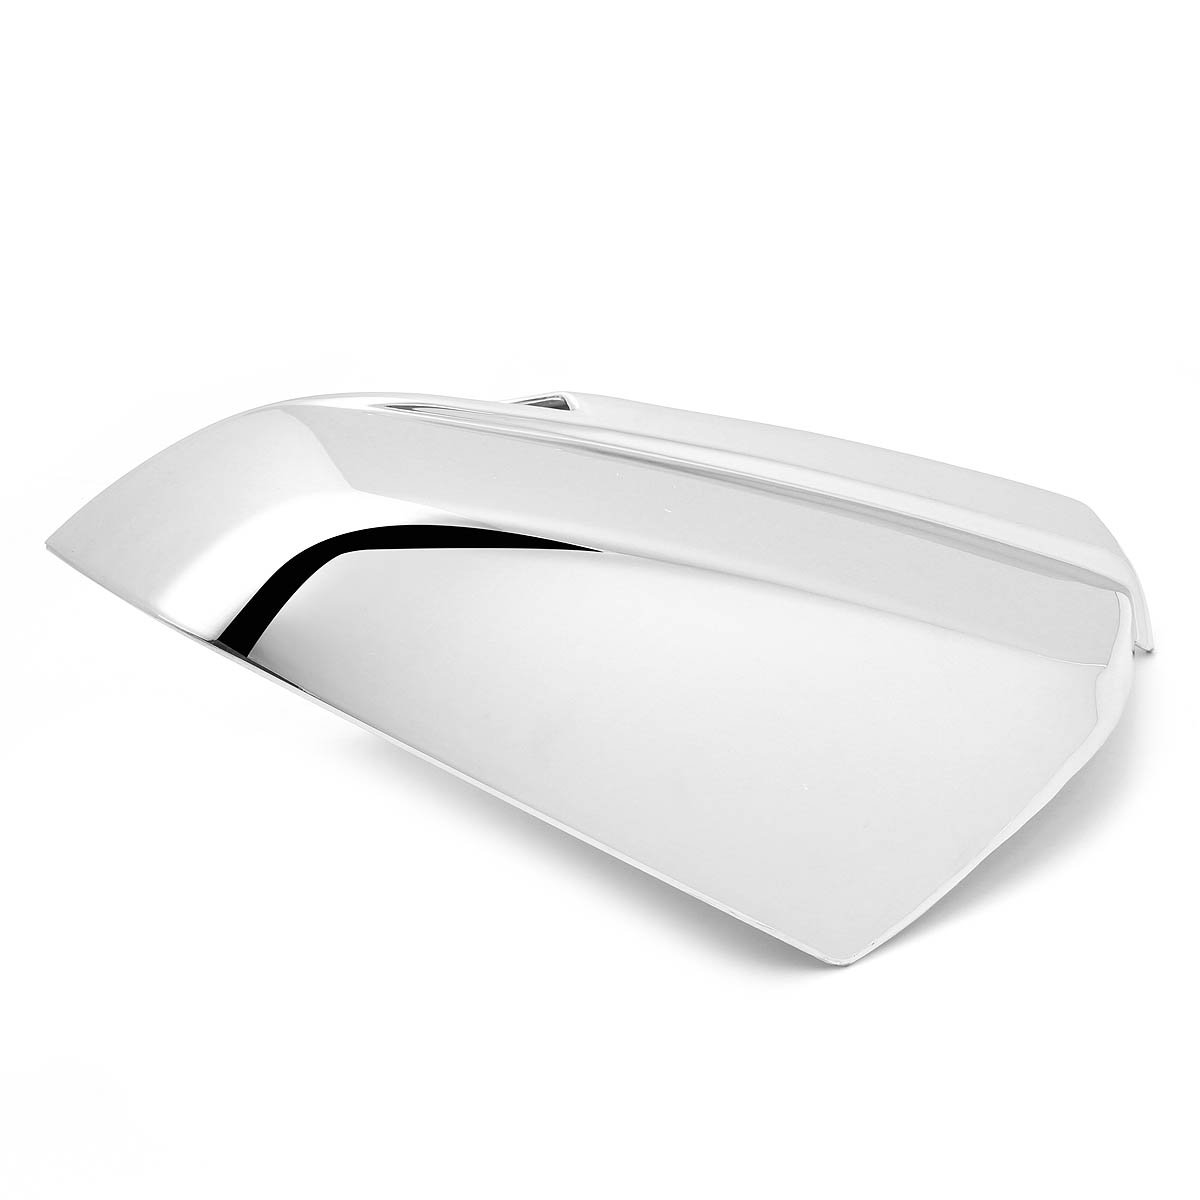 Chrome For Chevy Malibu Pair of Exterior Side Door Mirror Covers Auto Dynasty